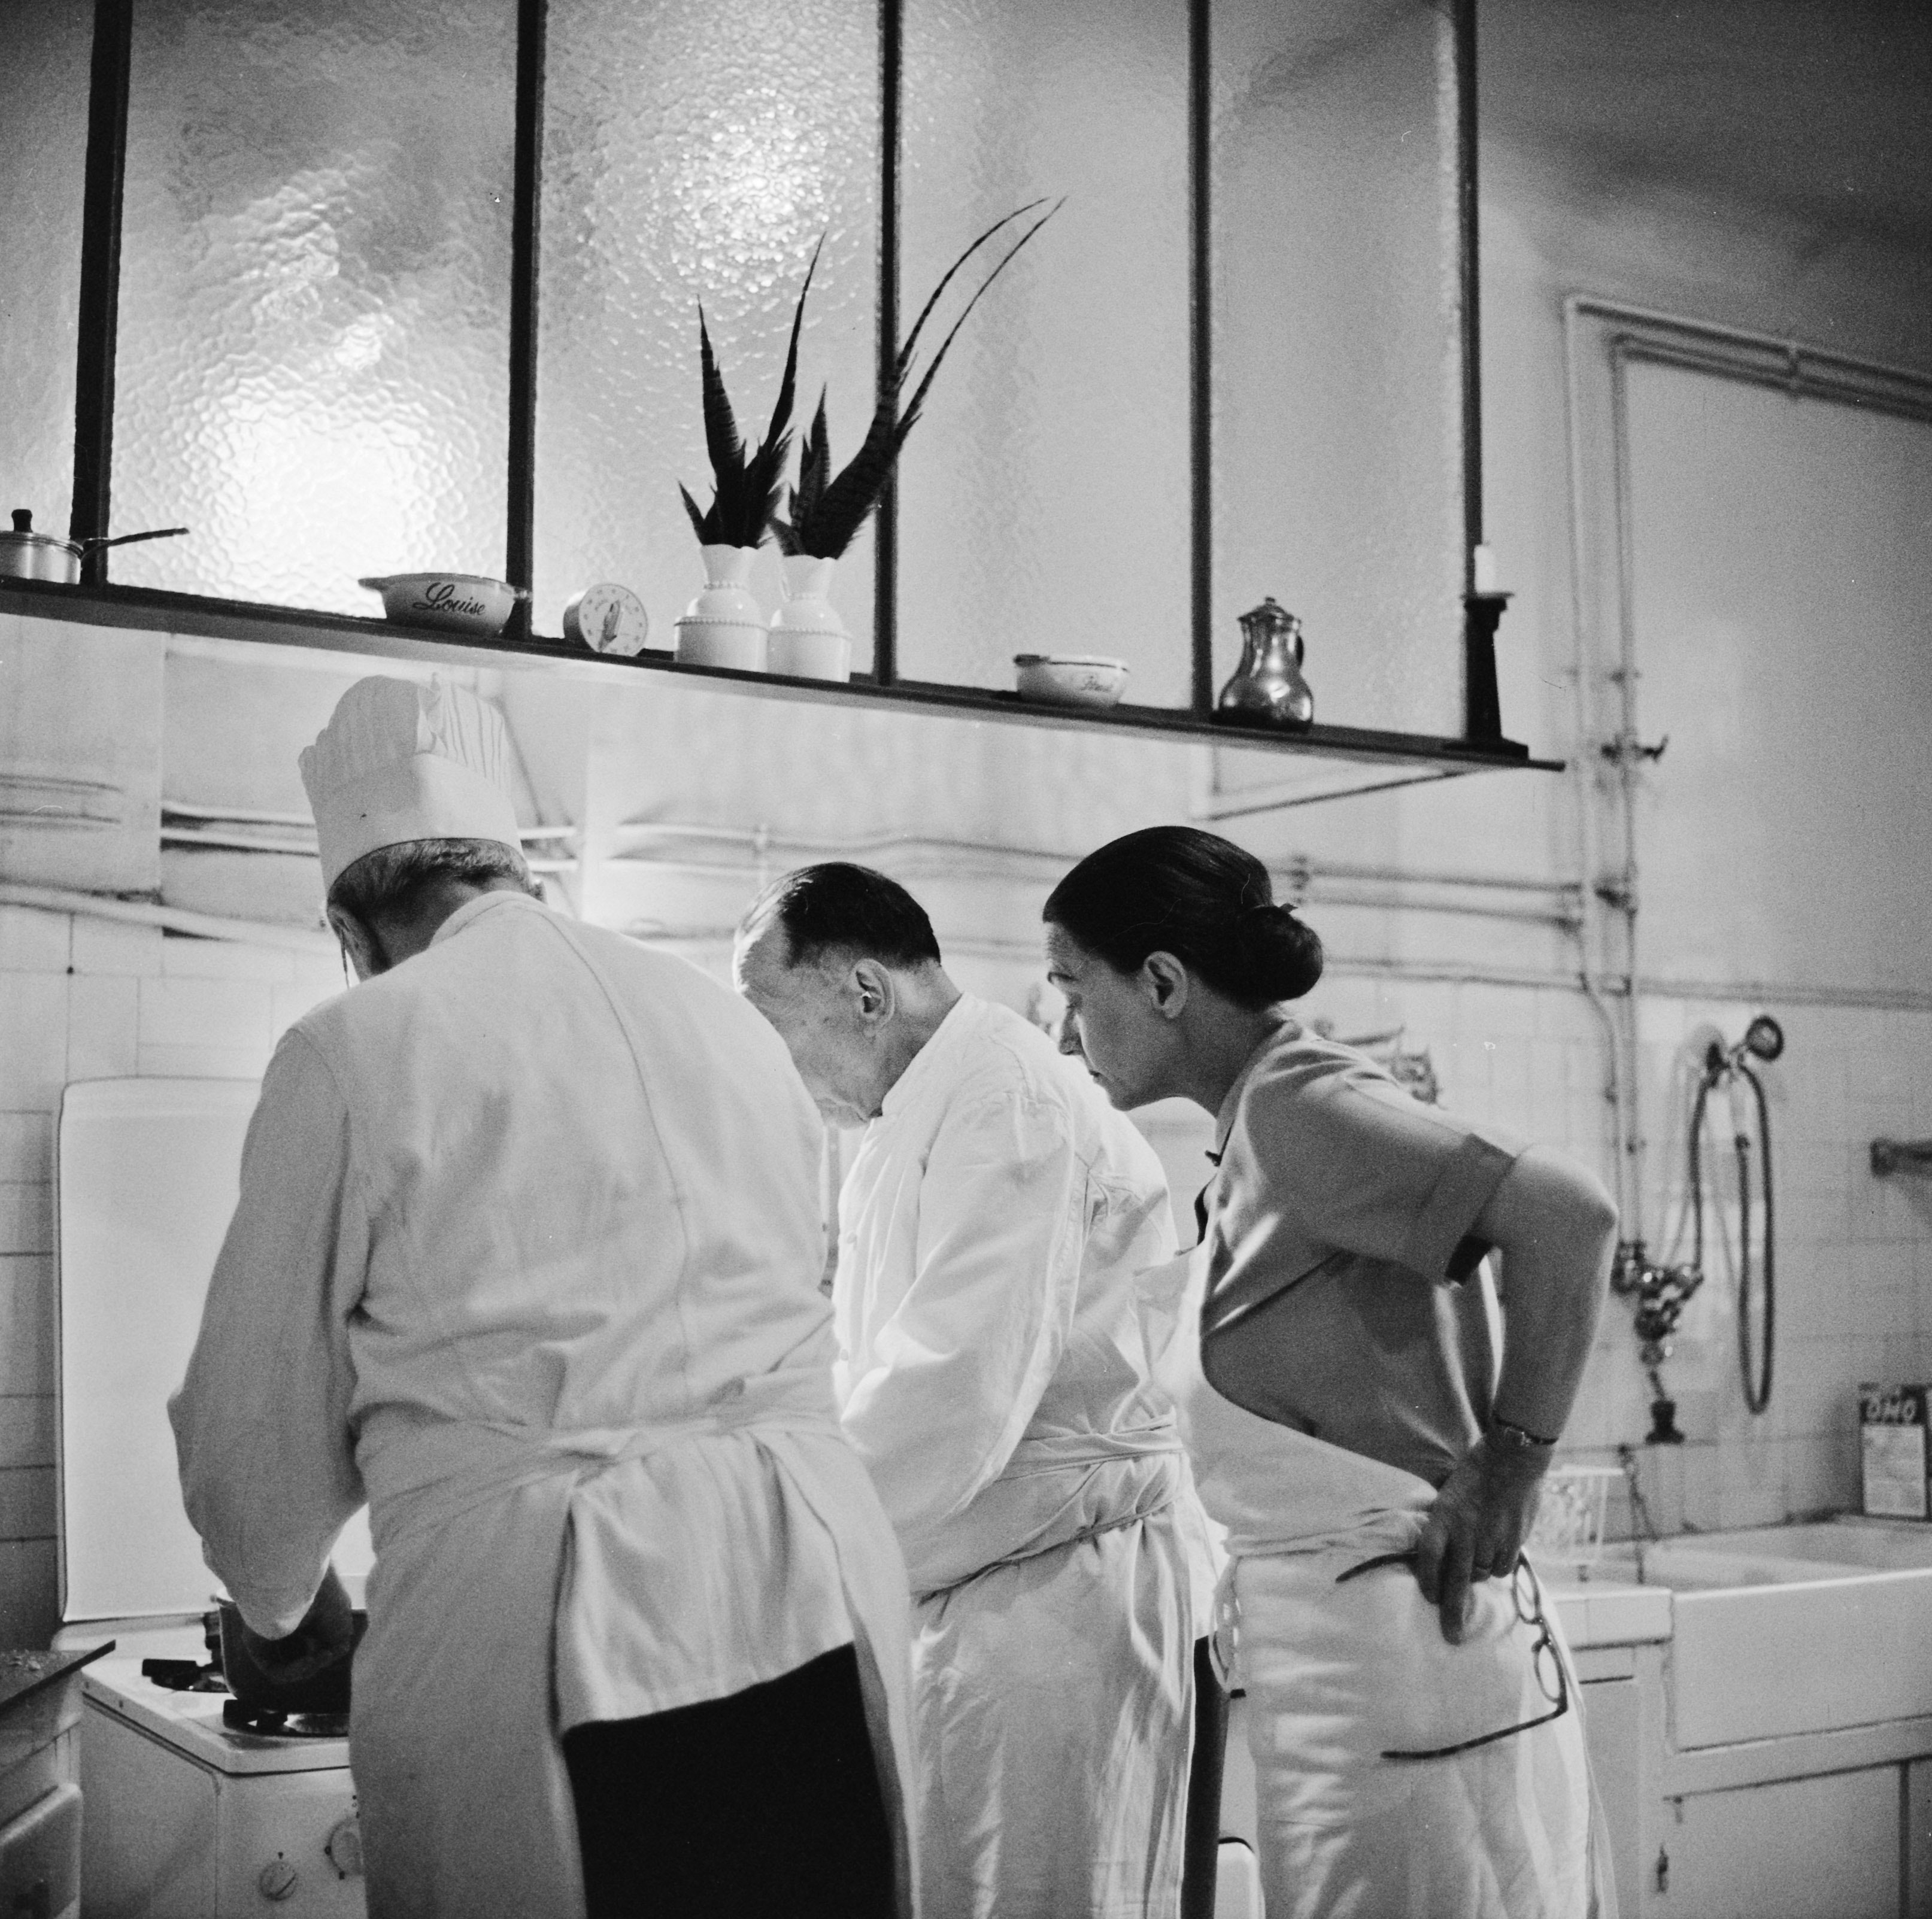 Julia Child and two others working in the kitchen